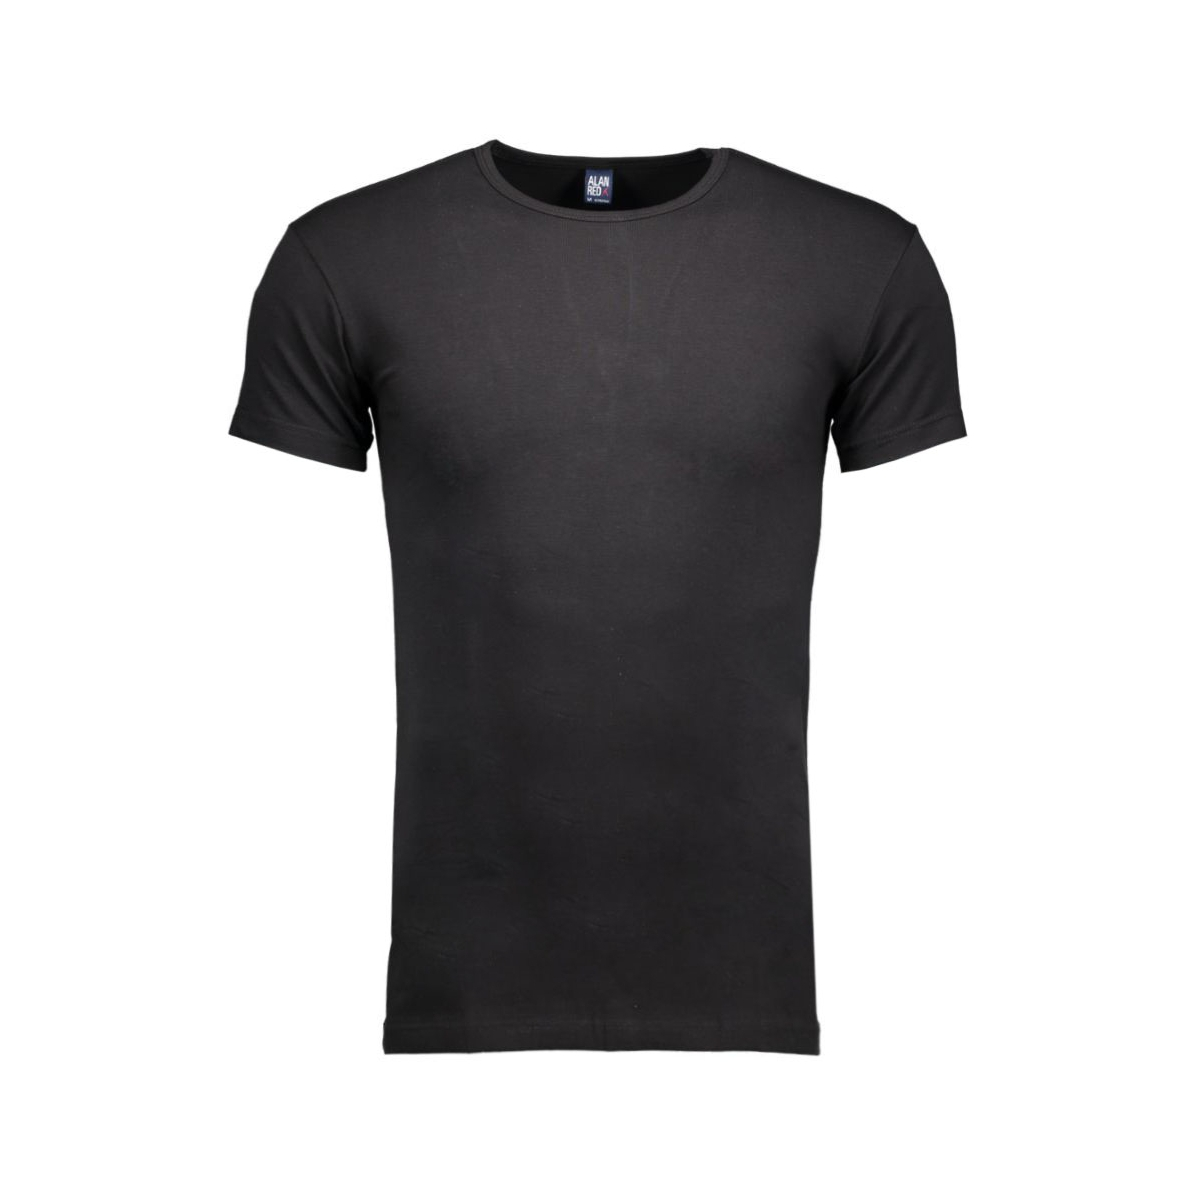 6680sp ottawa alan red t-shirt black